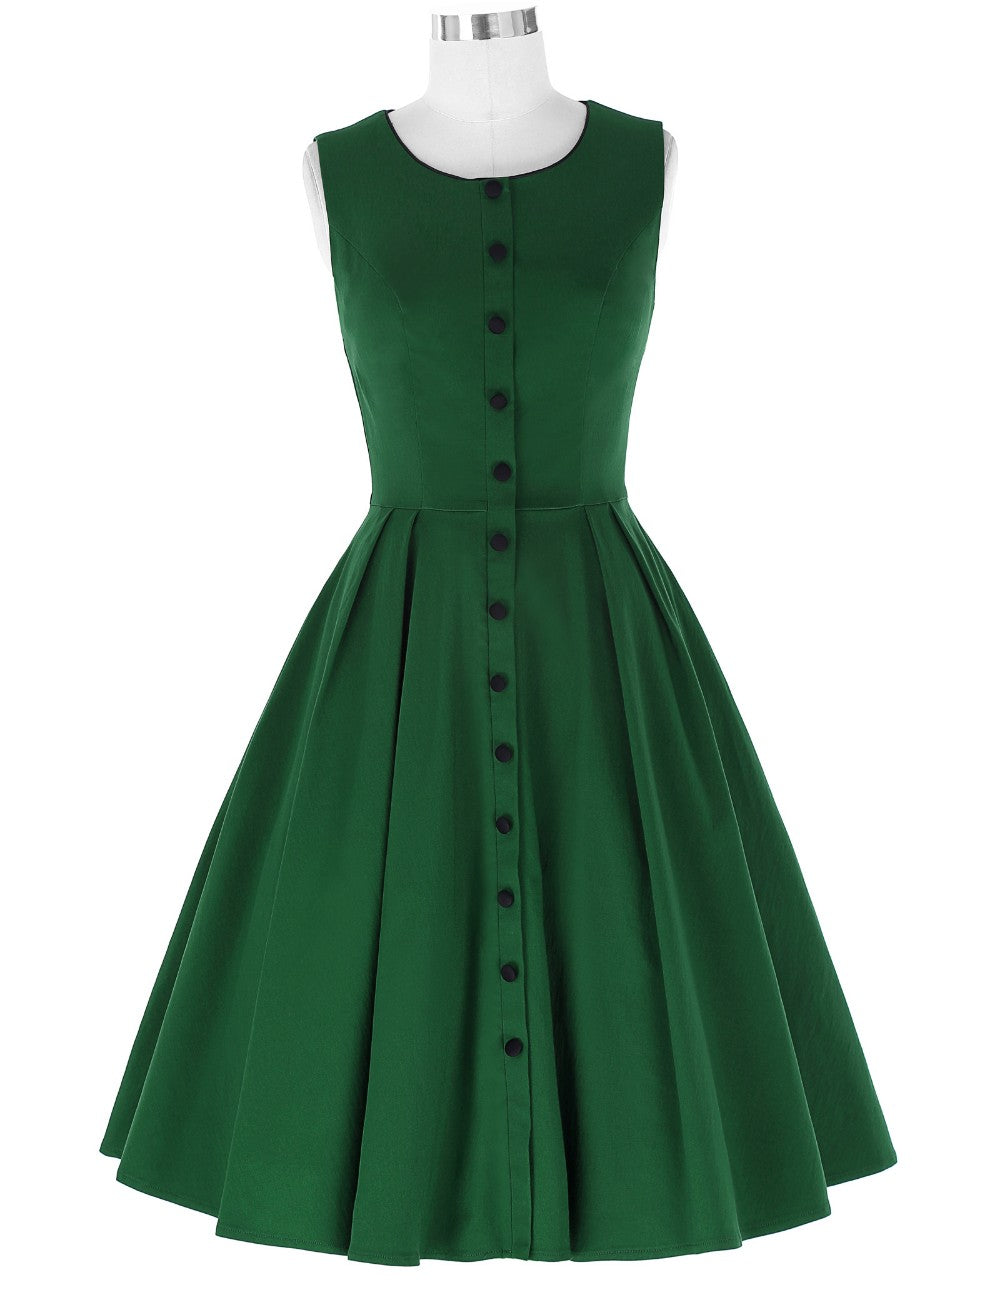 Miss Lulo Pin Up Sleeveless Dress in Green